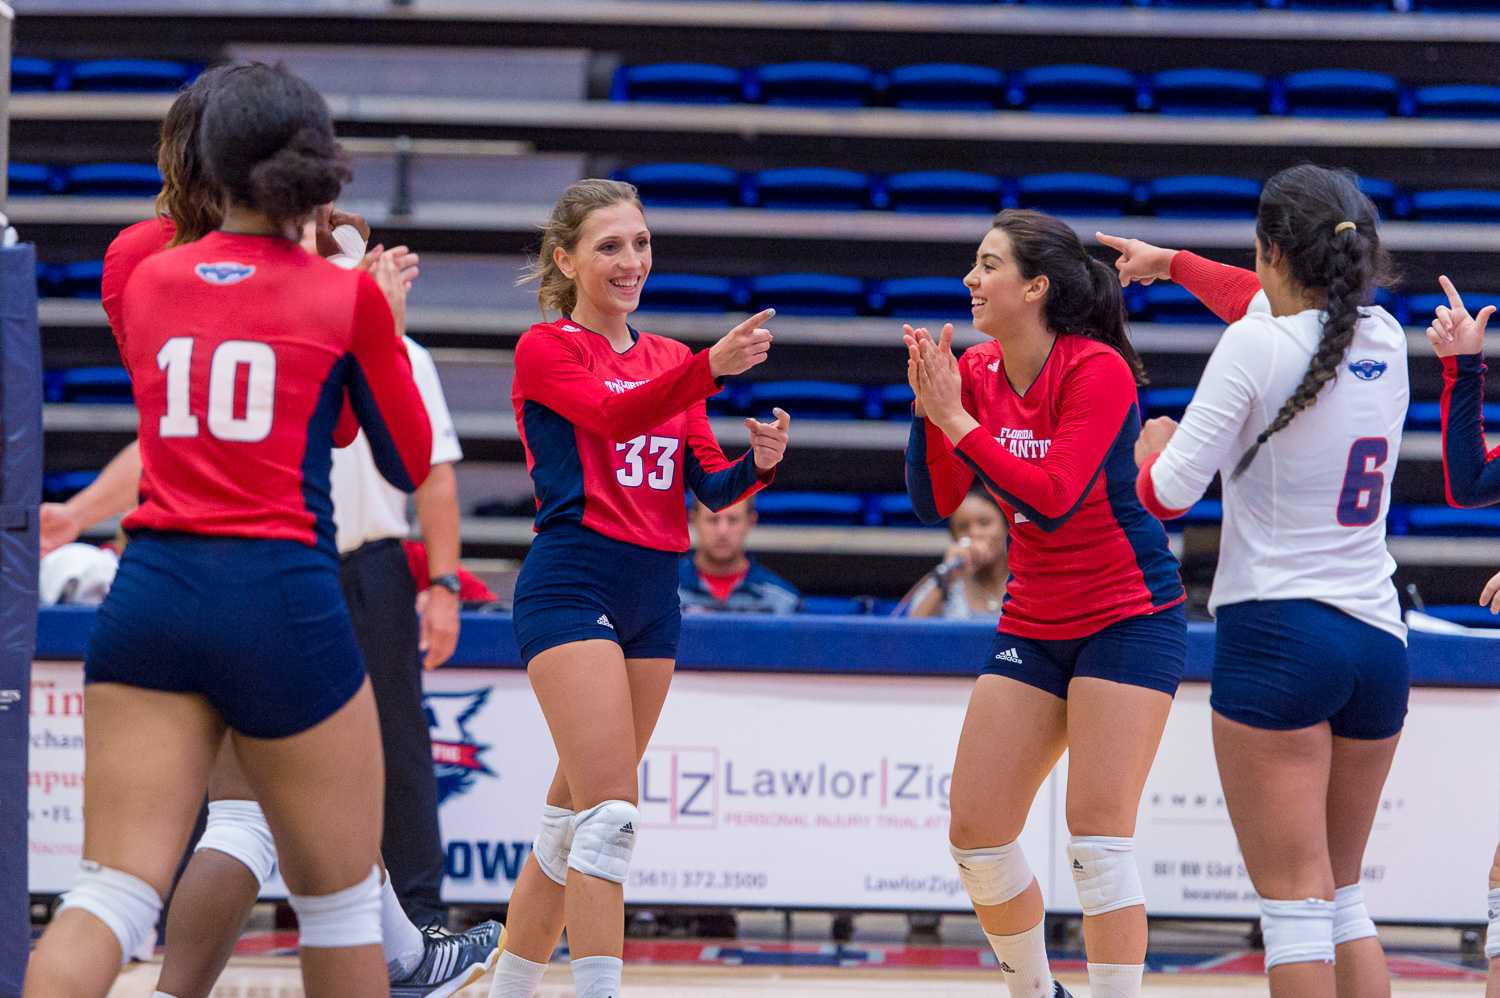 The Owl's celebrate after a successful volley against Stetson on during the FAU Invitational Tournament. FAU continued its success at UNF's Mayo Invitational, winning two games. Max Jackson | Staff Photographer